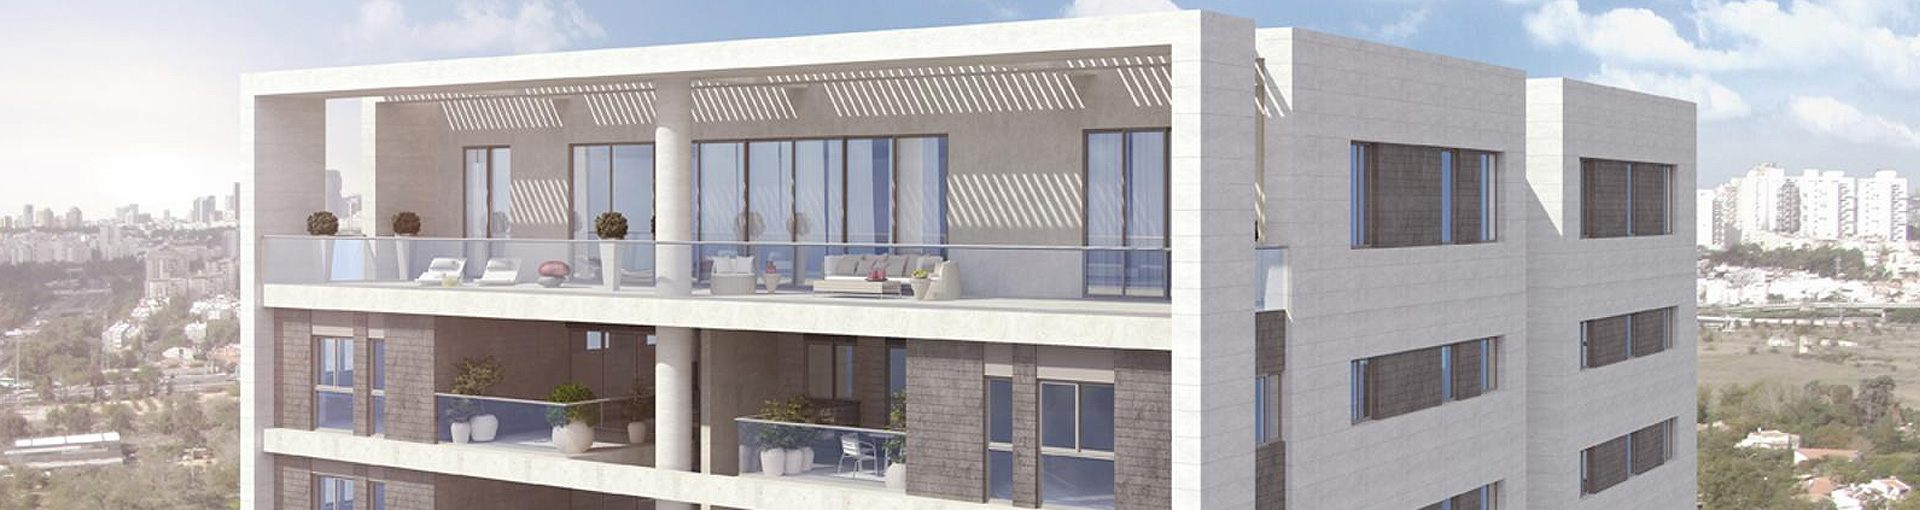 New apartments in Ramat Gan